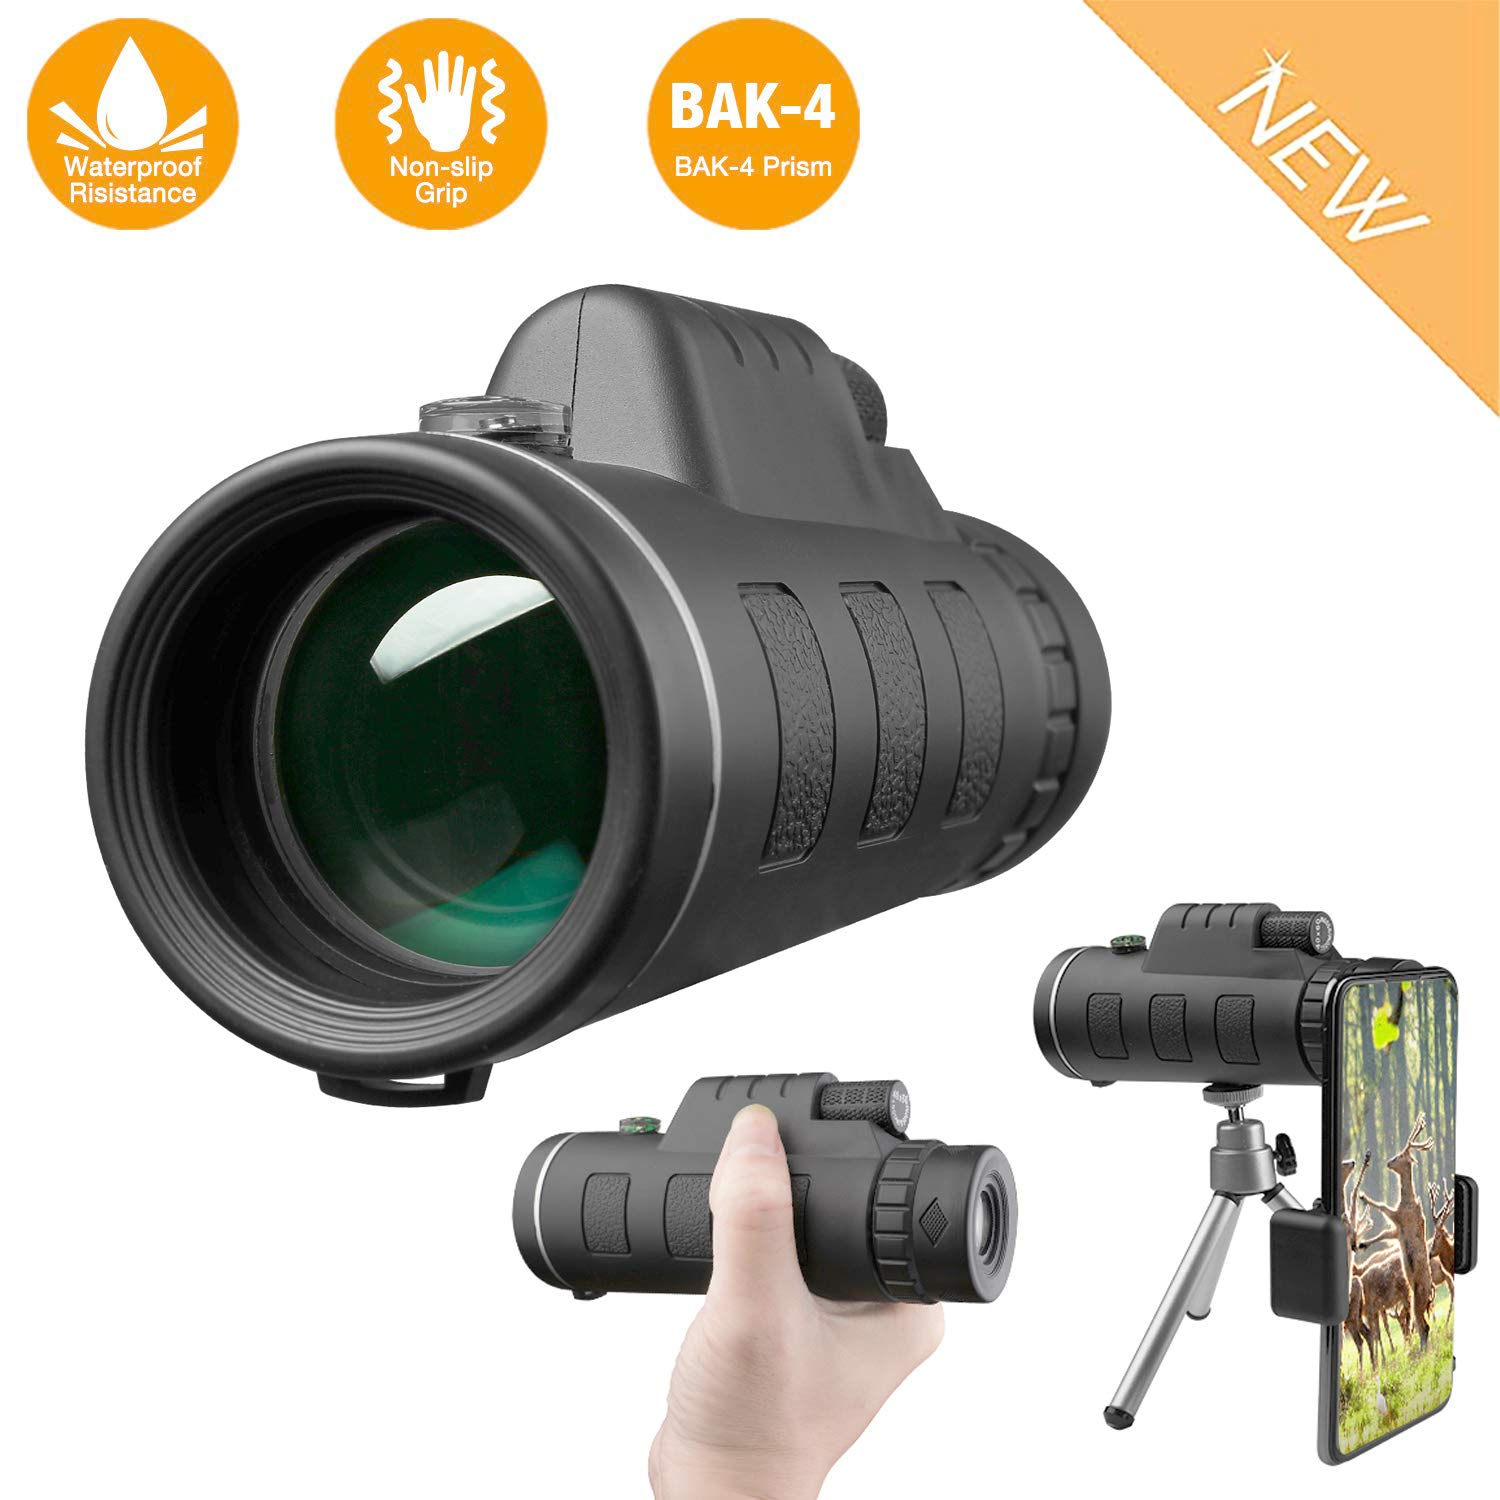 DOTSOG 40X60 High Power HD Waterproof Monocular Telescope,Monocular Scope with Smartphone Holder,BAK4 Prism for Concert Bird Watching Hunting Camping Travelling Wildlife-[2019 Upgraded Version] by DOTSOG